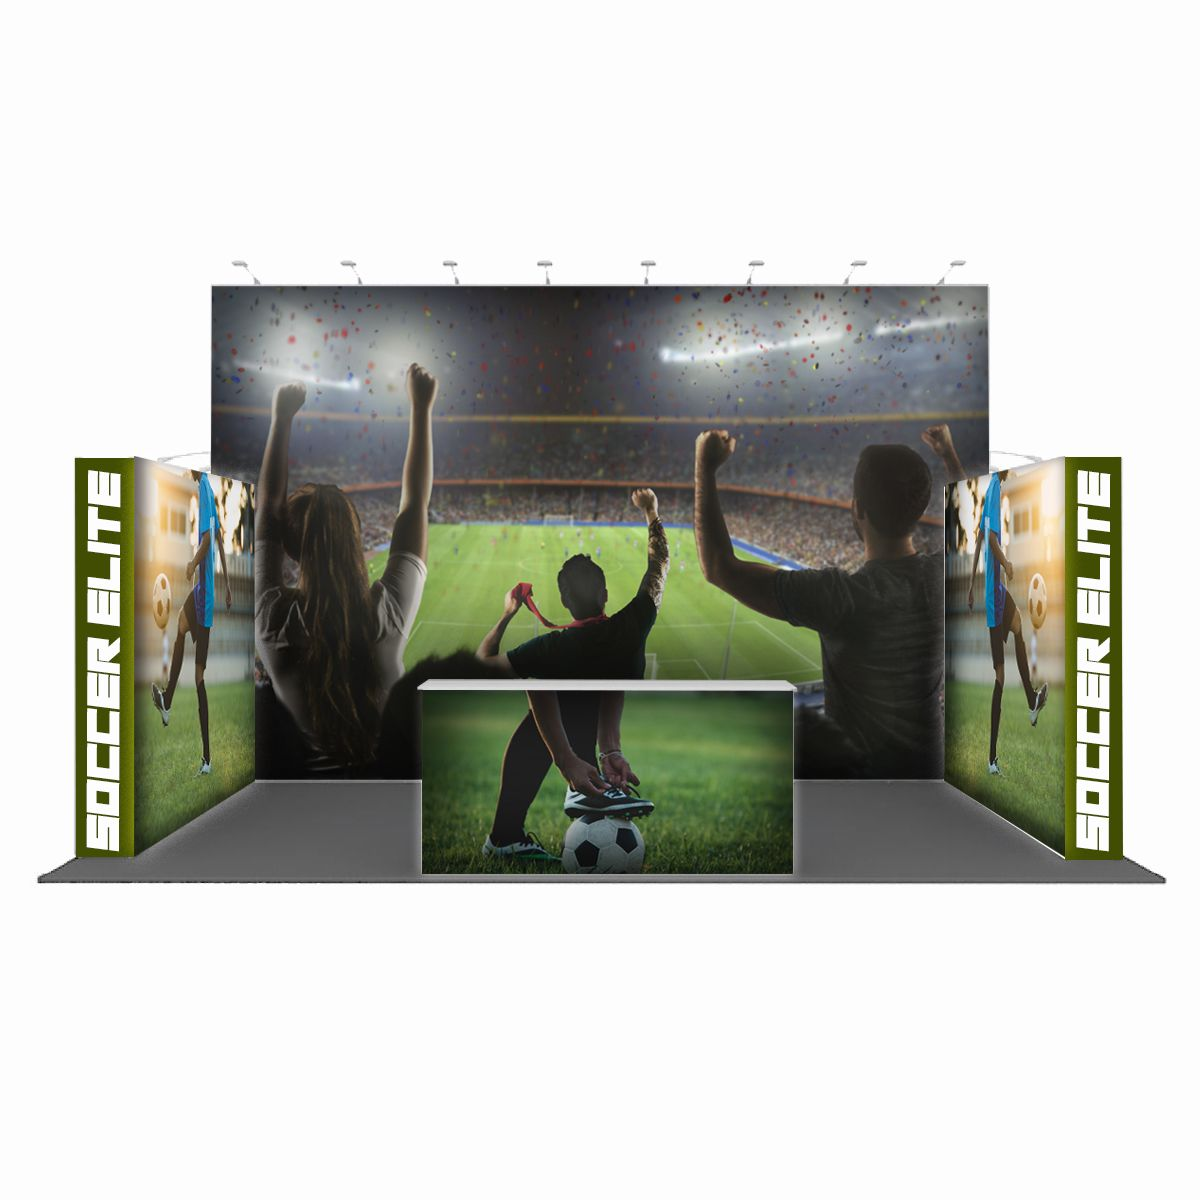 Popular Backlit Display Combination 02 (20' x 10' x 10')